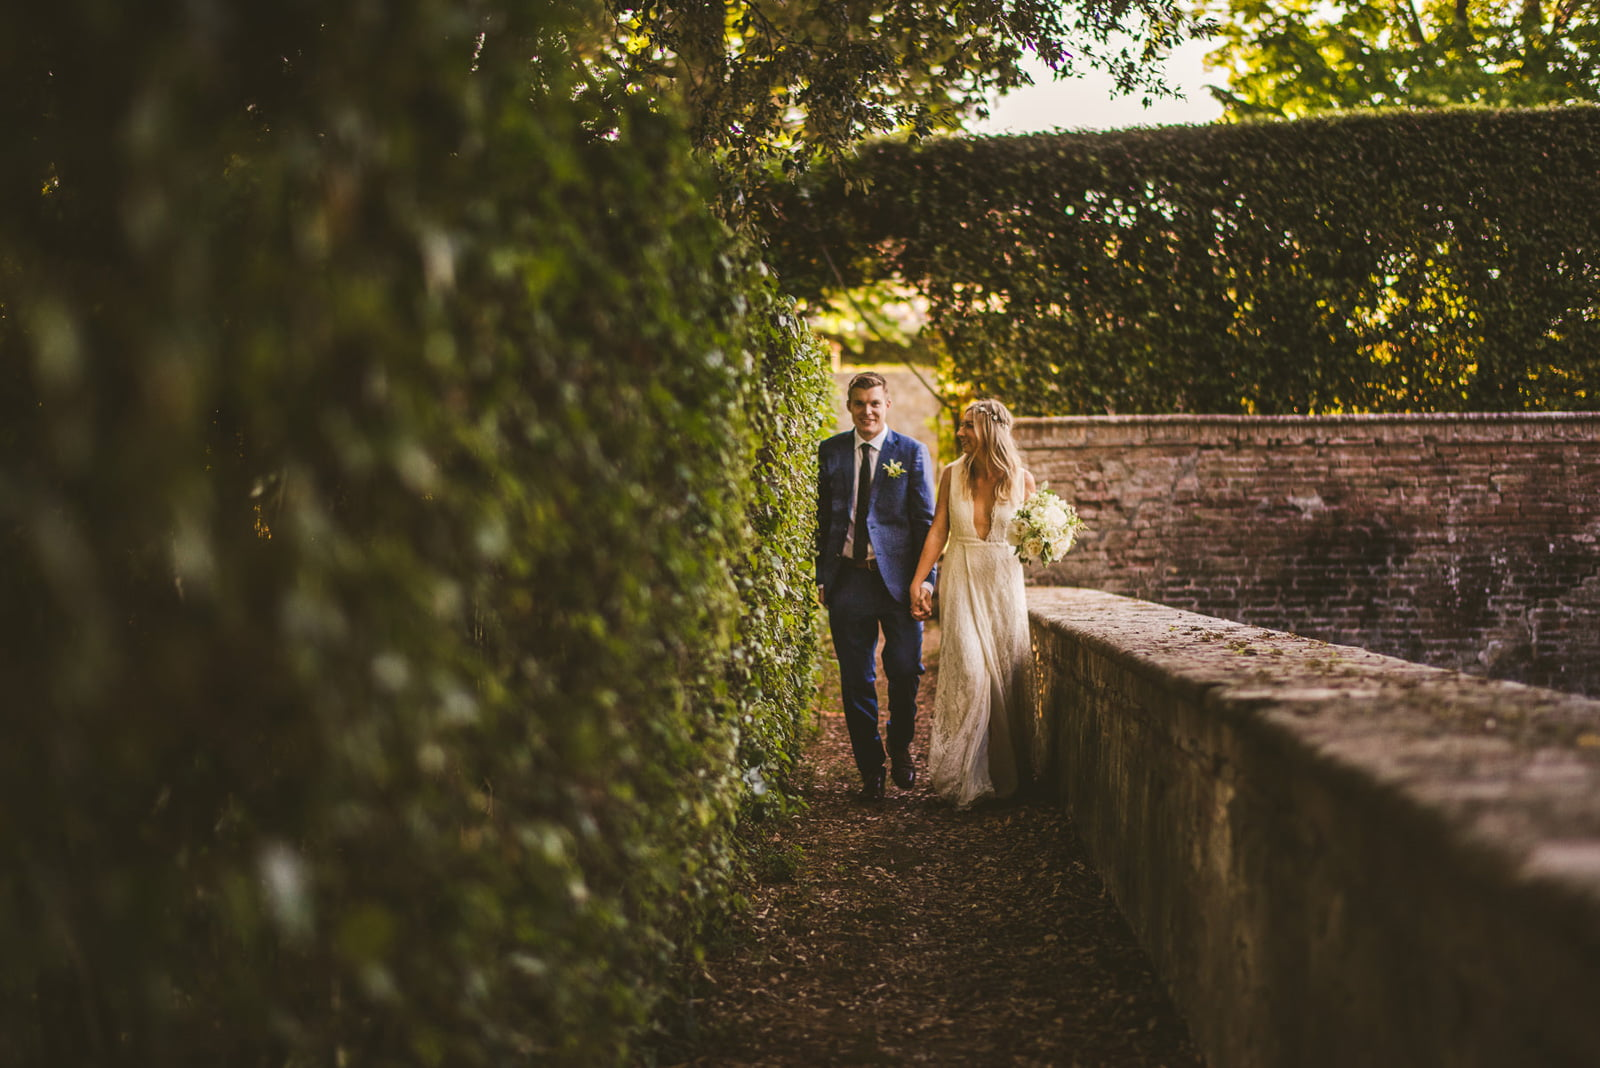 A+L Wedding at Montechiaro, Siena by Federico Pannacci 74